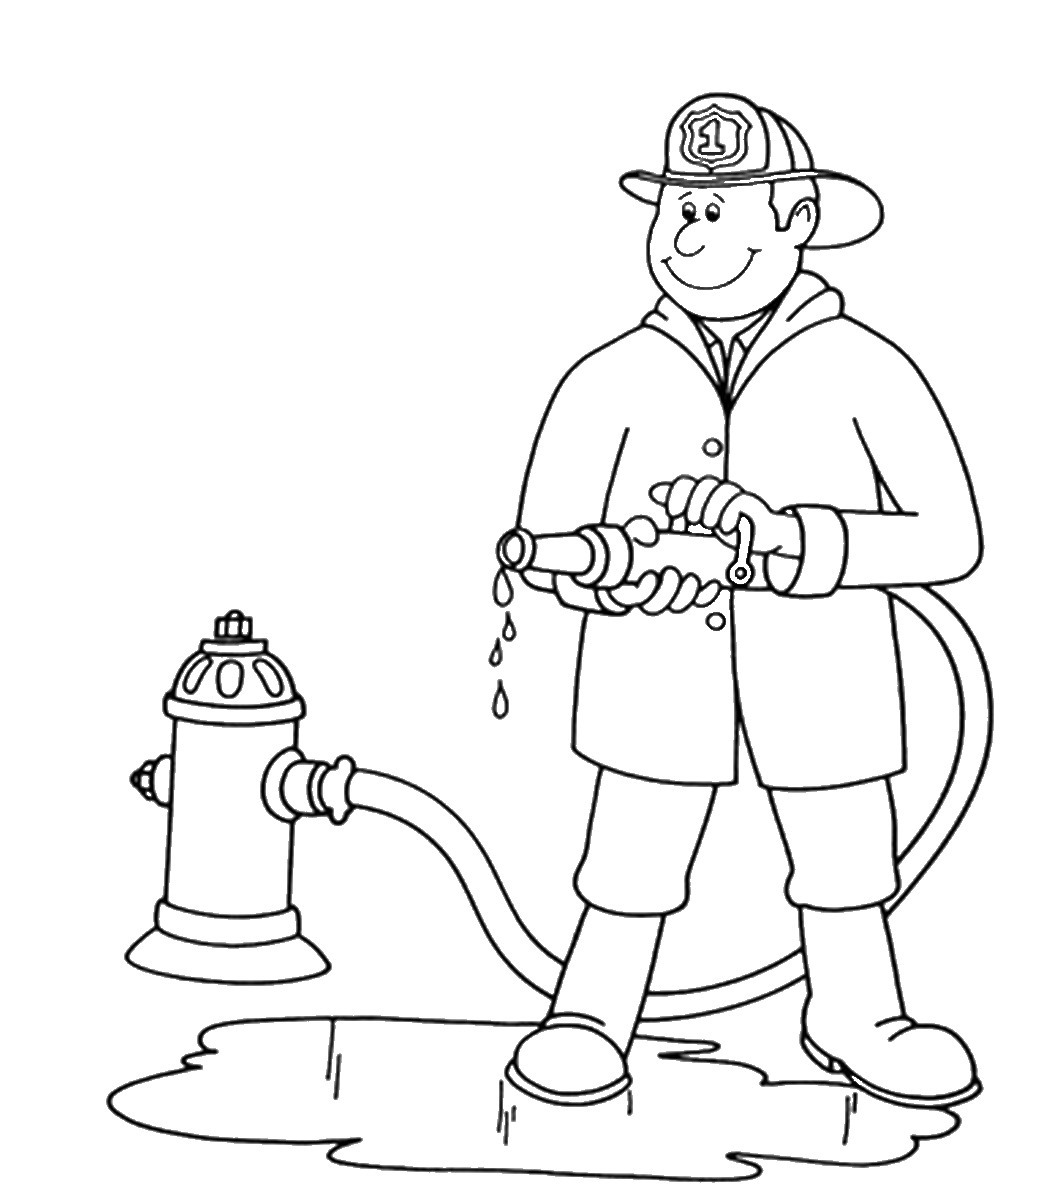 Free Firefighter Cliparts Black Download Free Clip Art